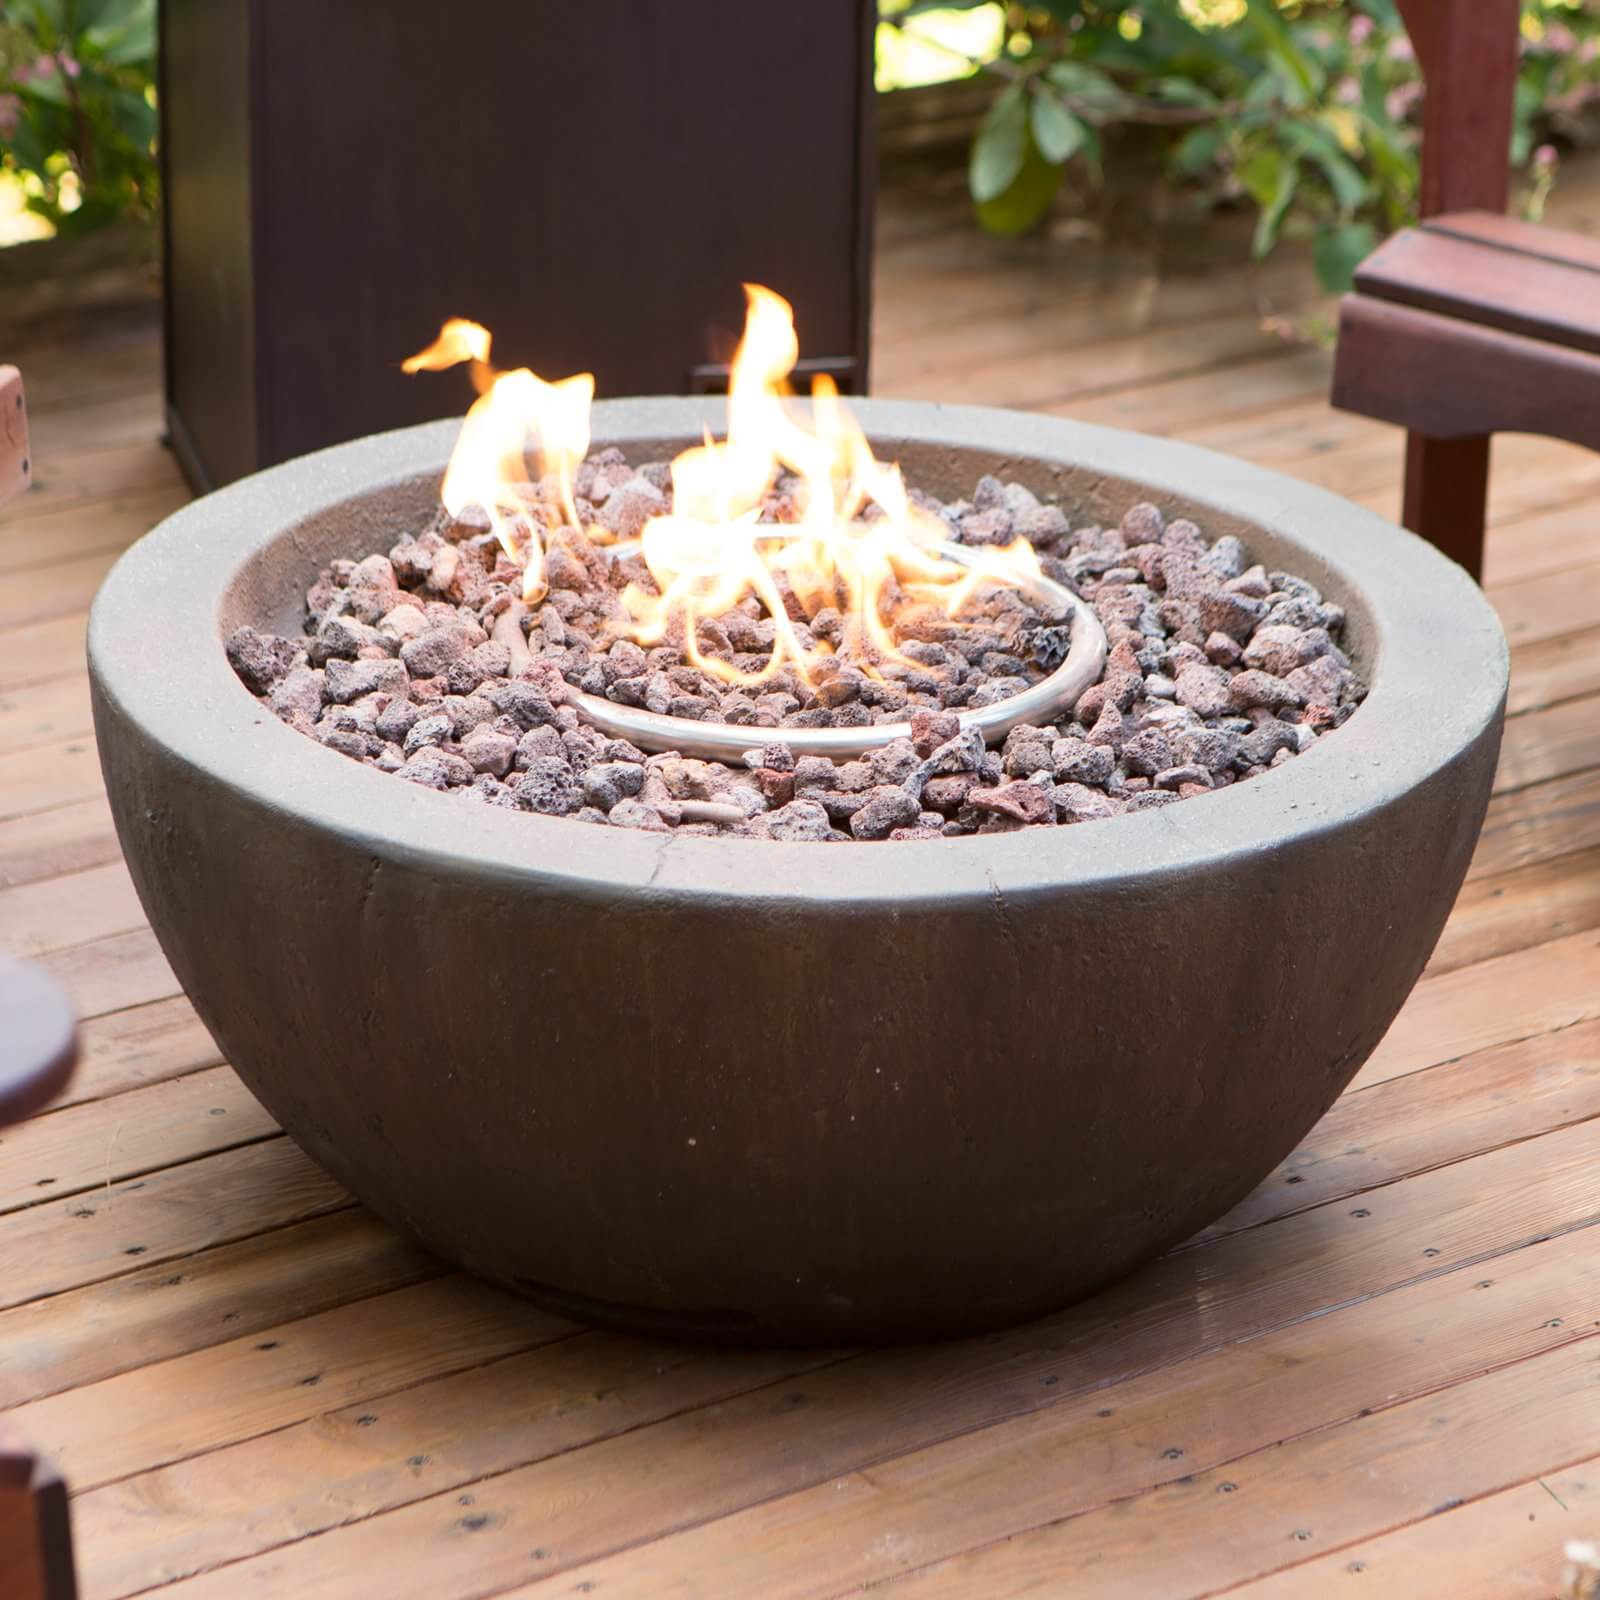 Best ideas about Outdoor Gas Fire Pits . Save or Pin 42 Backyard and Patio Fire Pit Ideas Now.